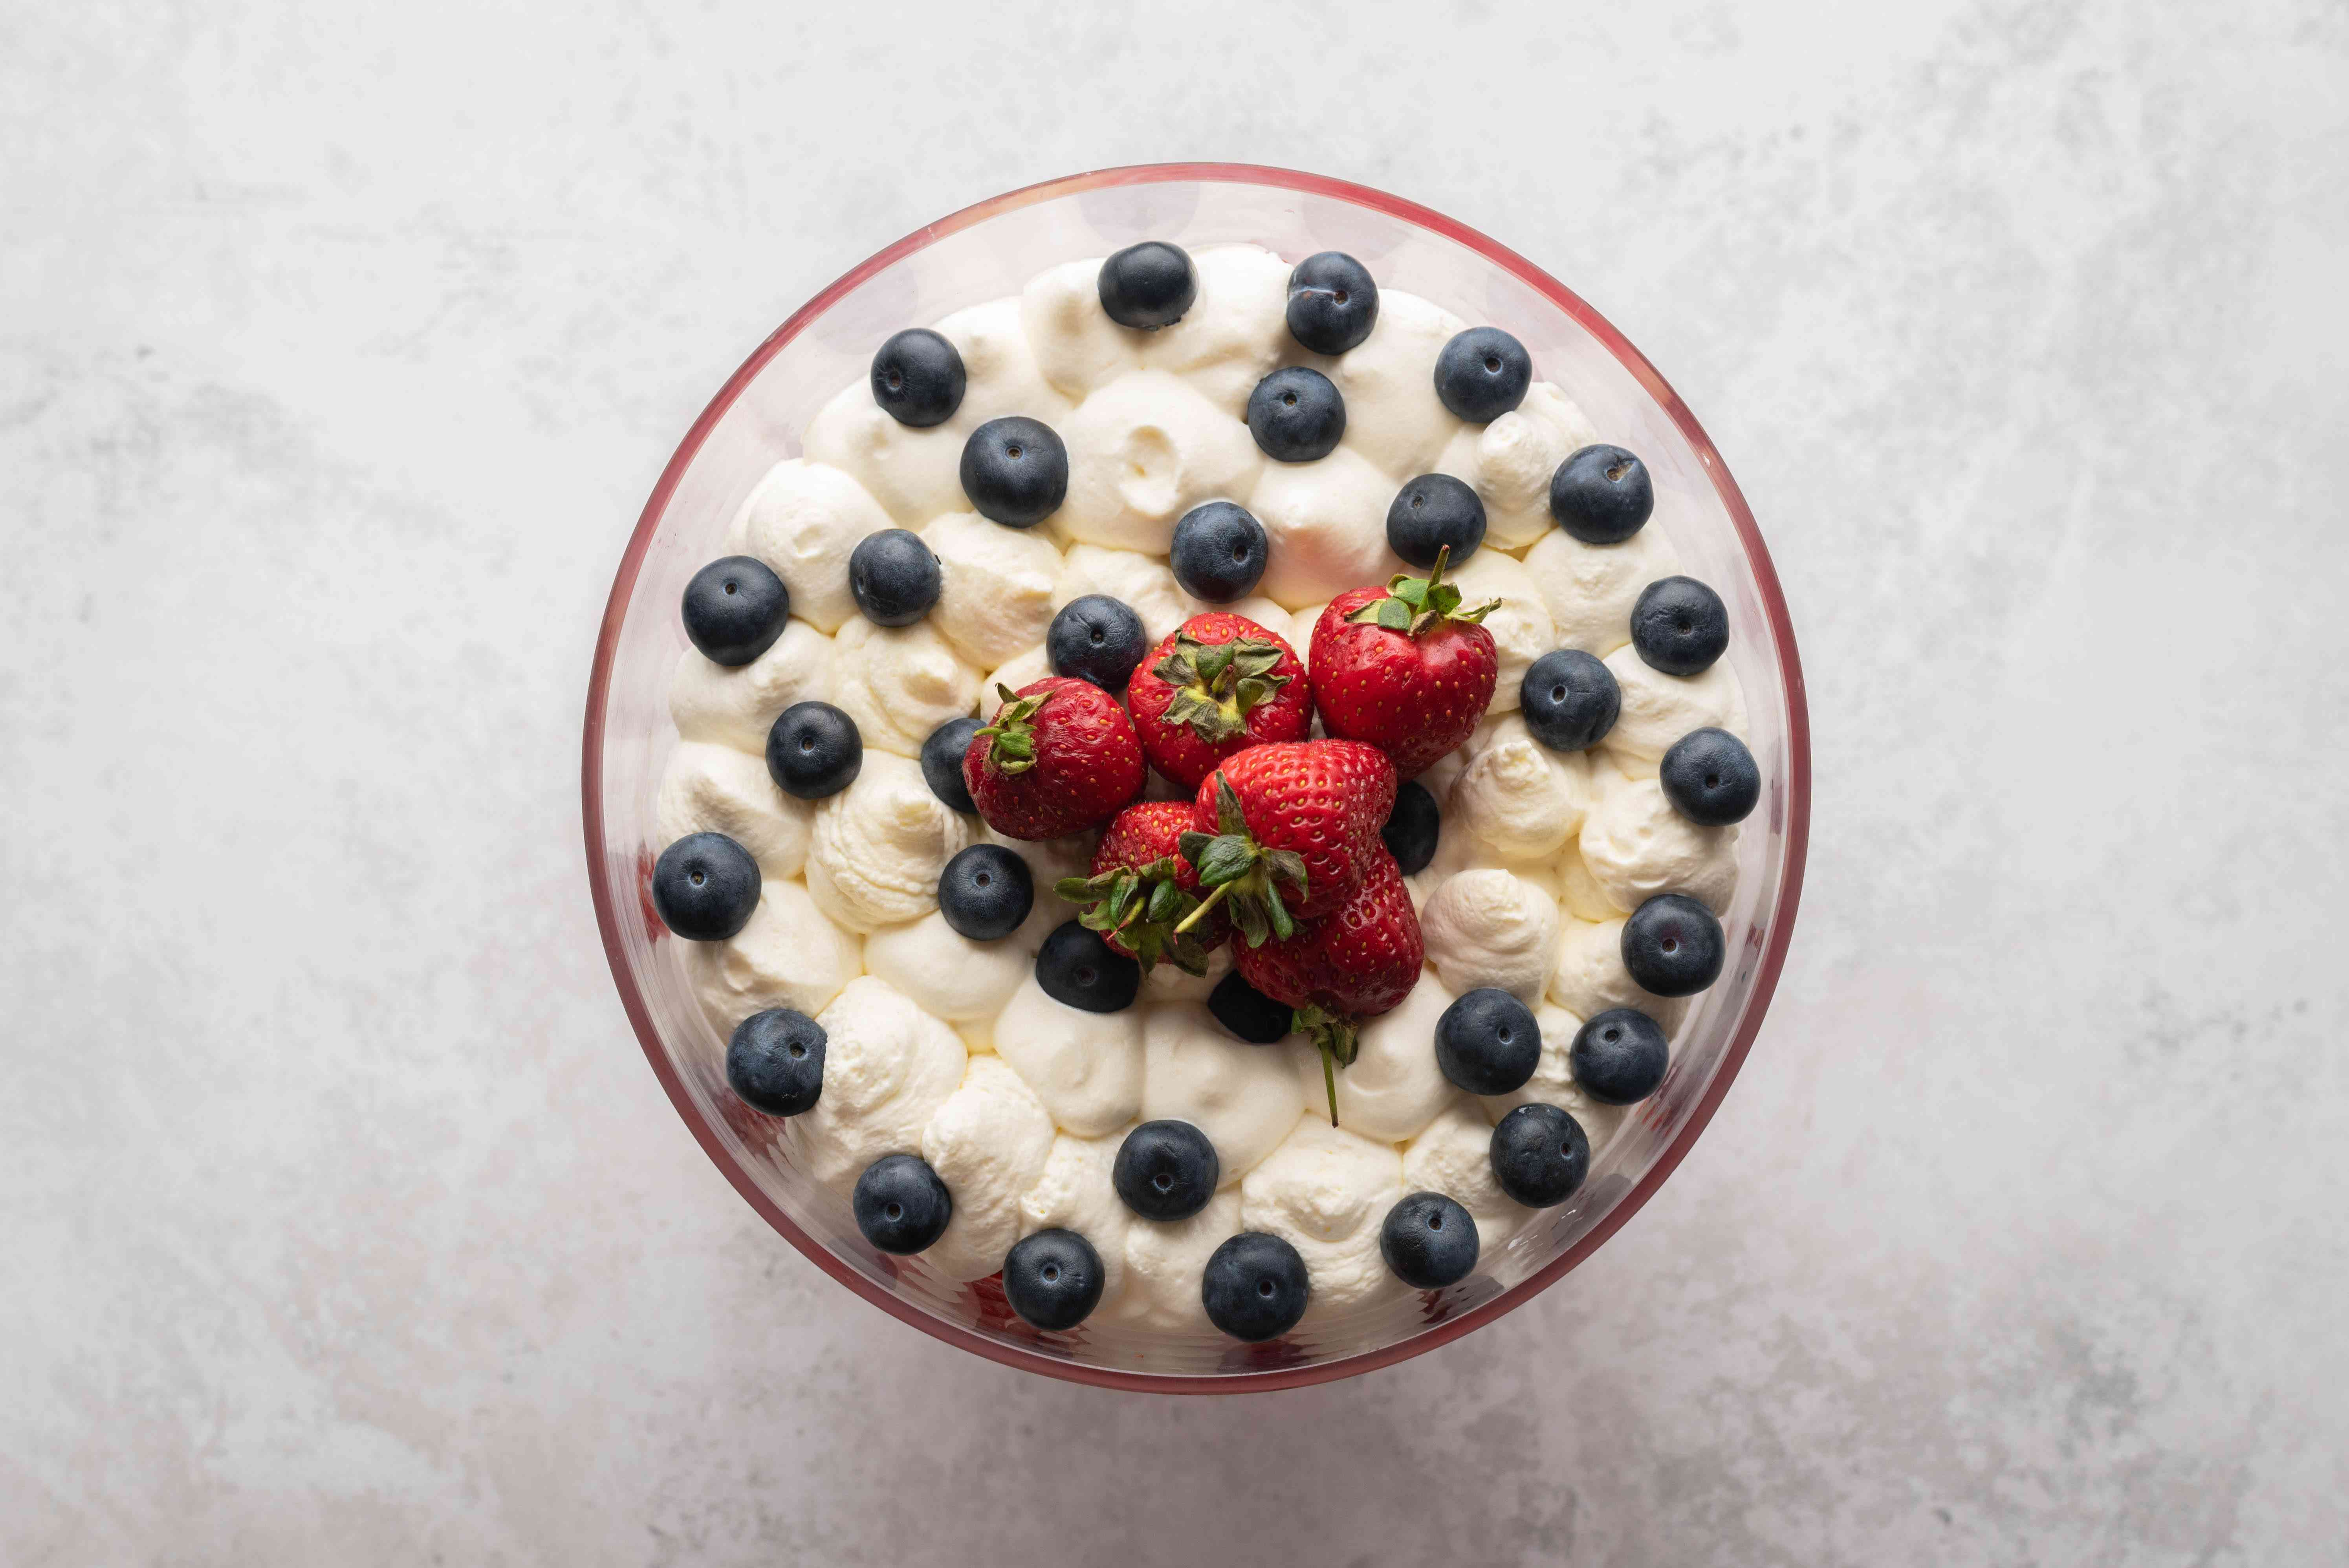 Classic Berry Trifle topped with berries